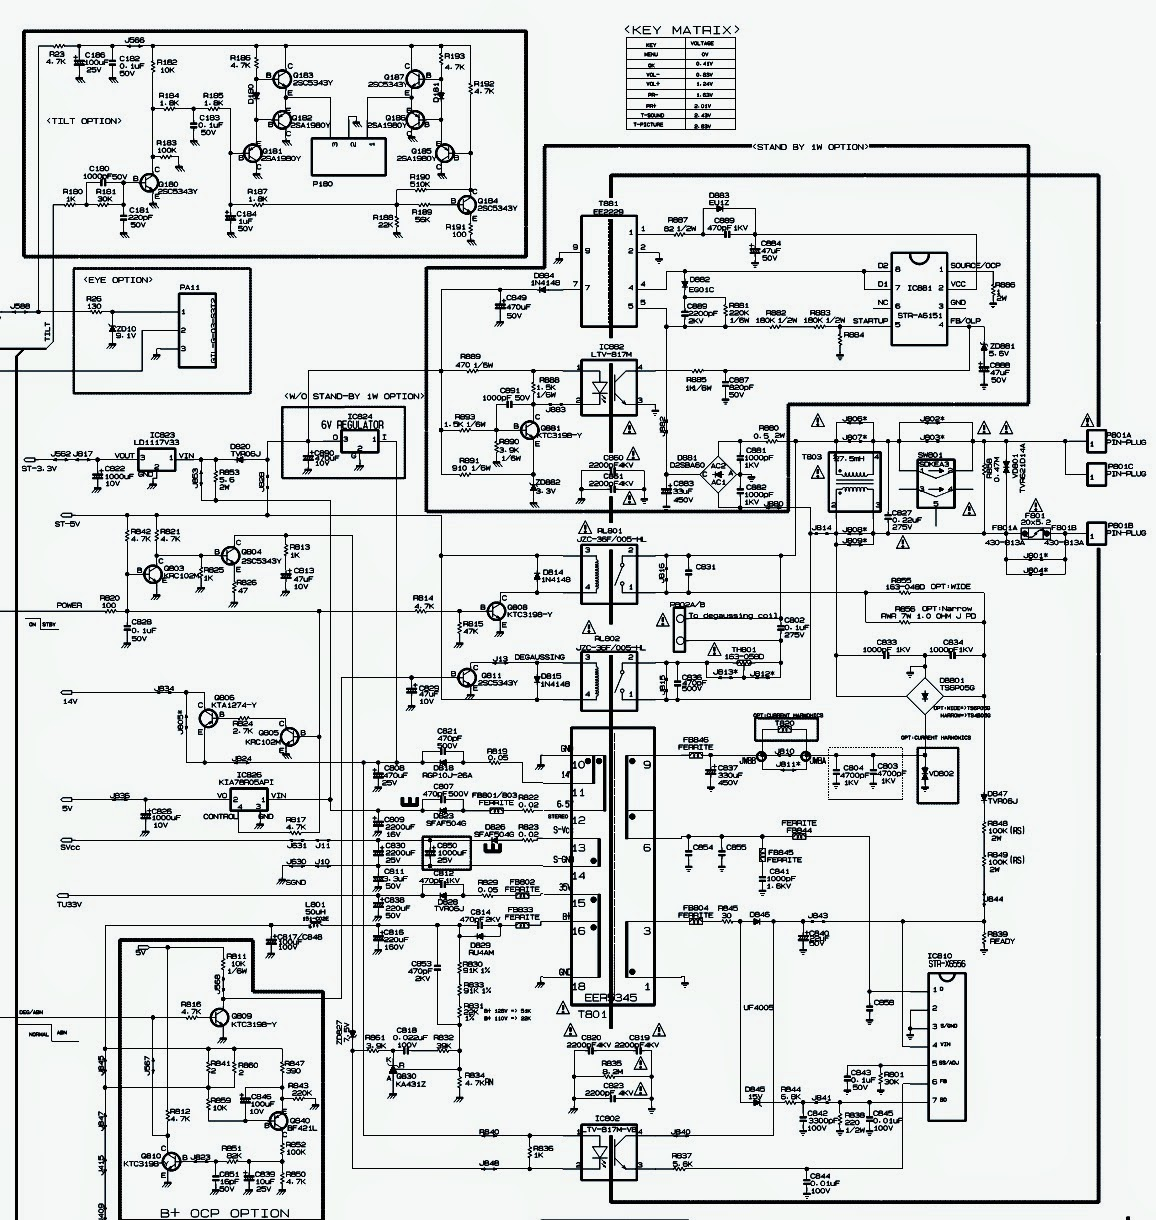 Lg Xd Ultraslim Crt Tv 29fu1rl Rg Rld Smps Deflection And System Circuit Diagram Schematic